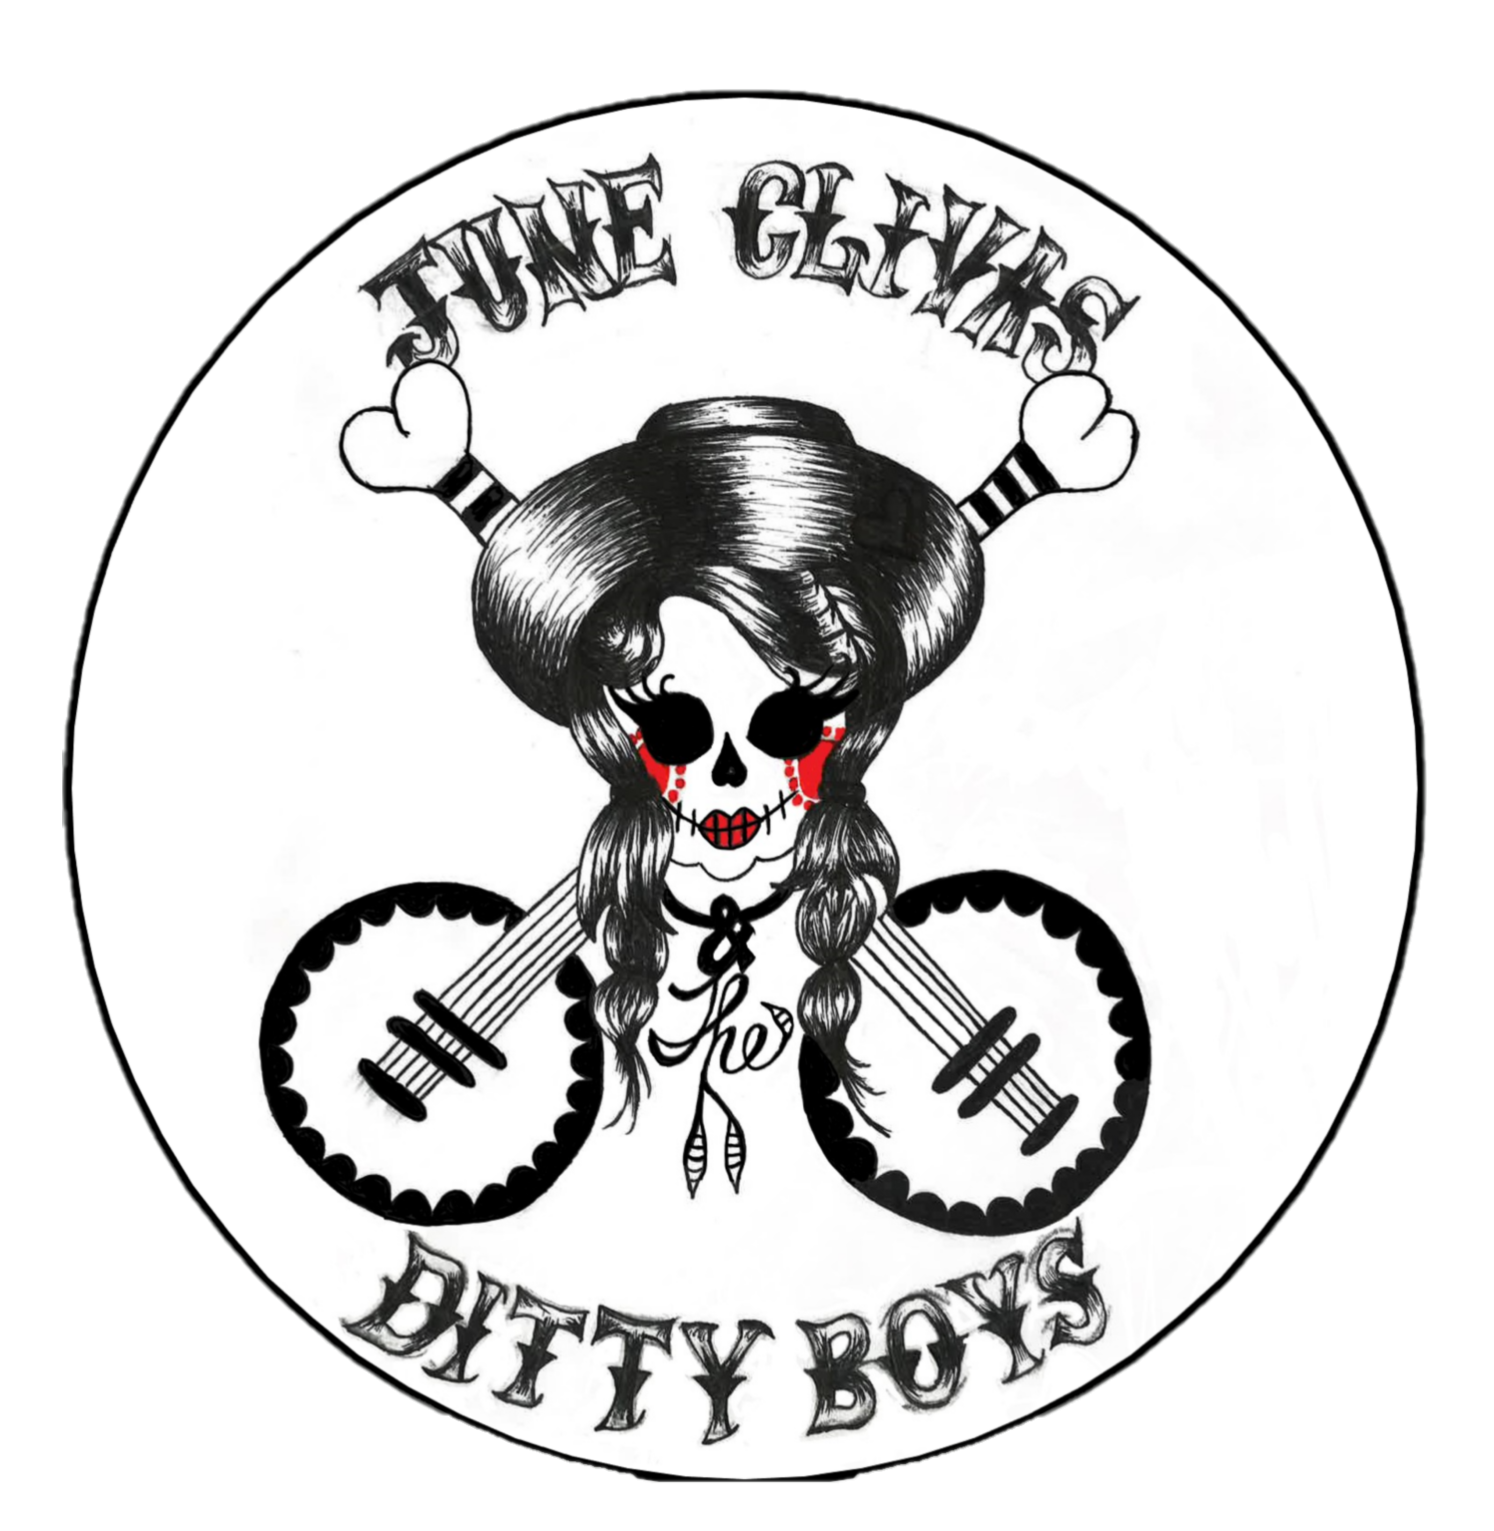 June Clivas and The Ditty Boys